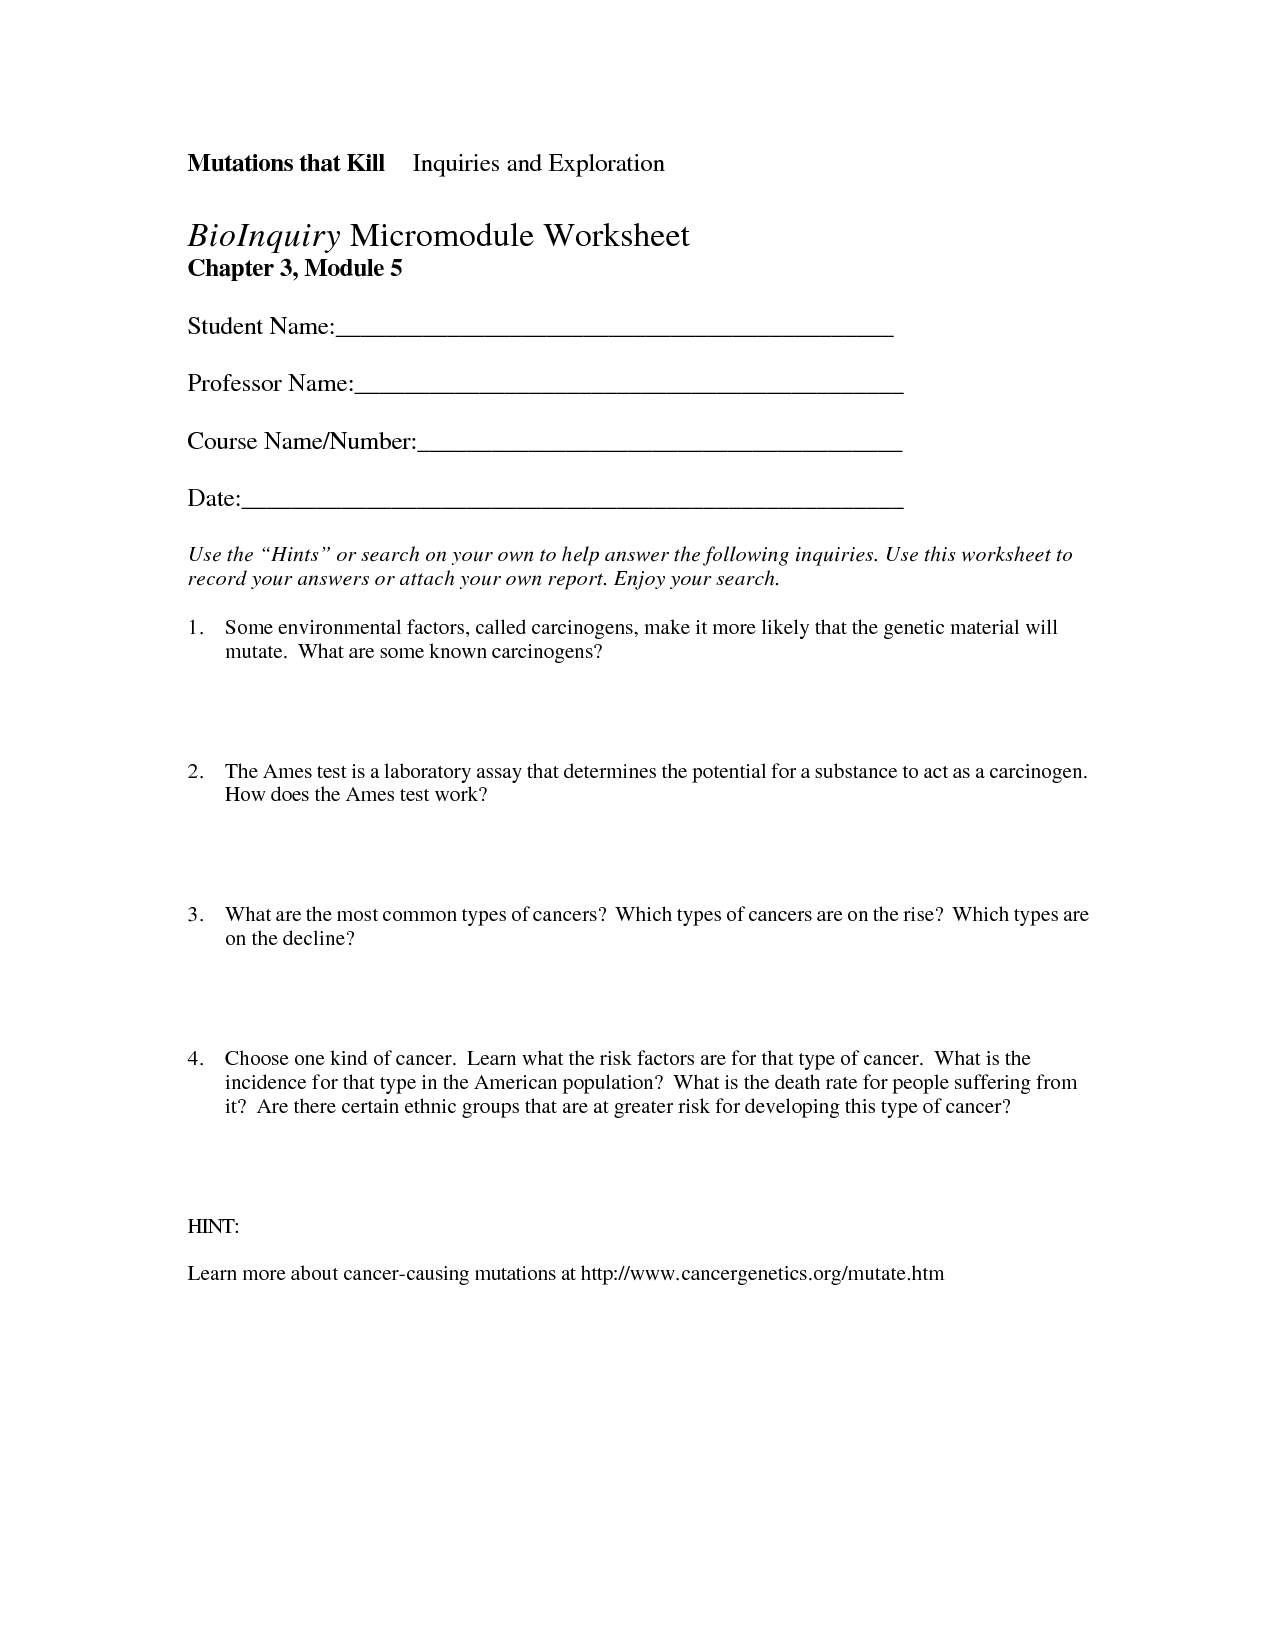 Codon Worksheet Answers  Printable Worksheets And